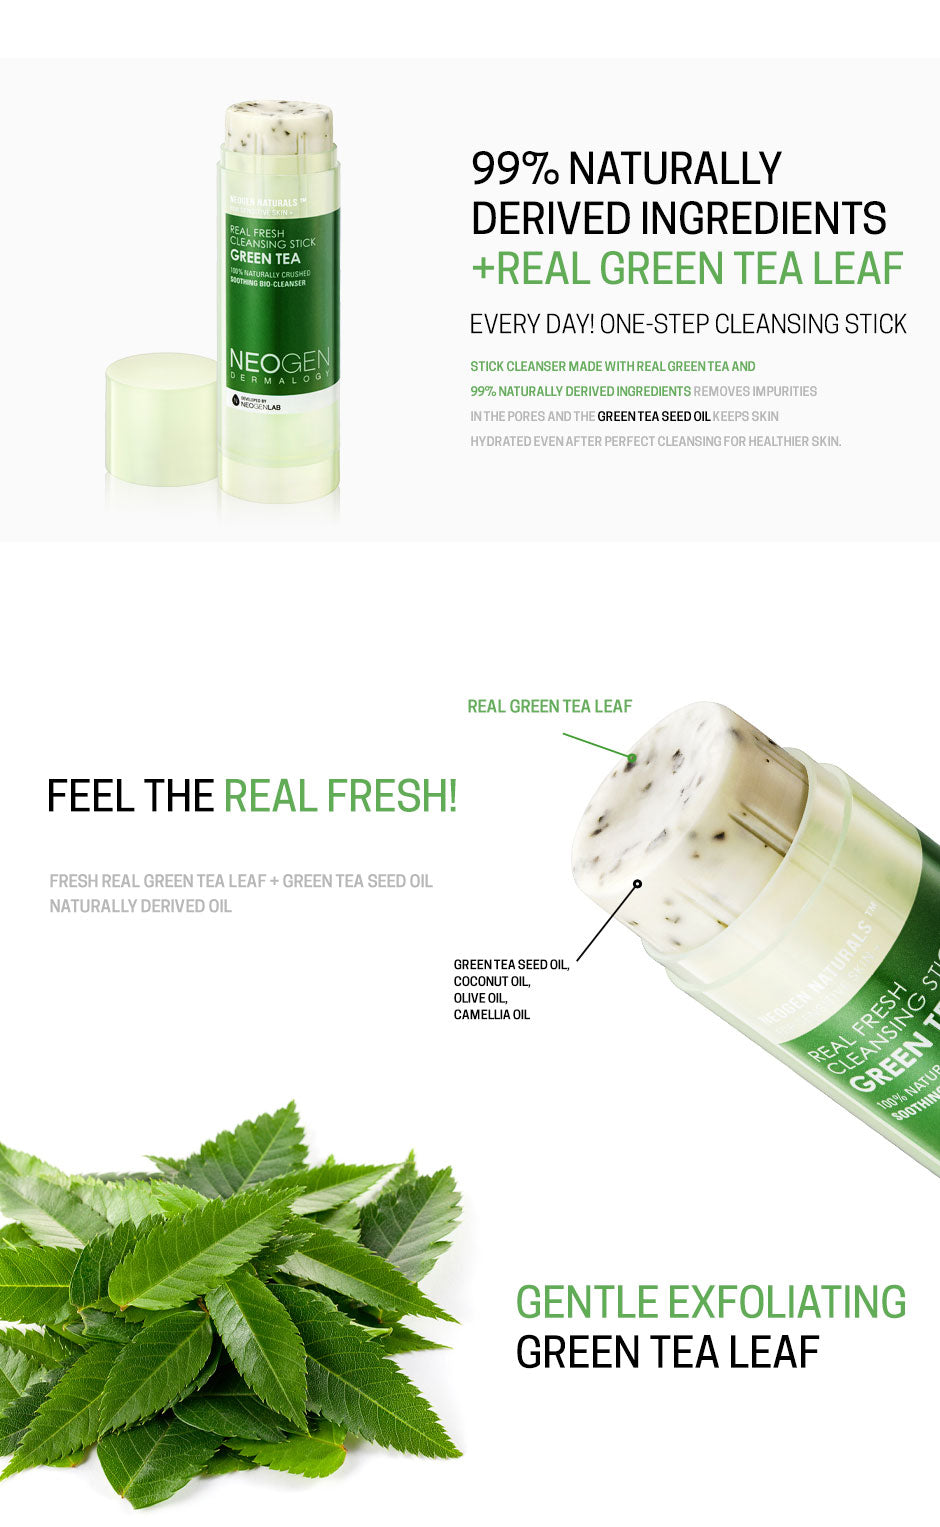 cleansing-stick-gt-2.jpg